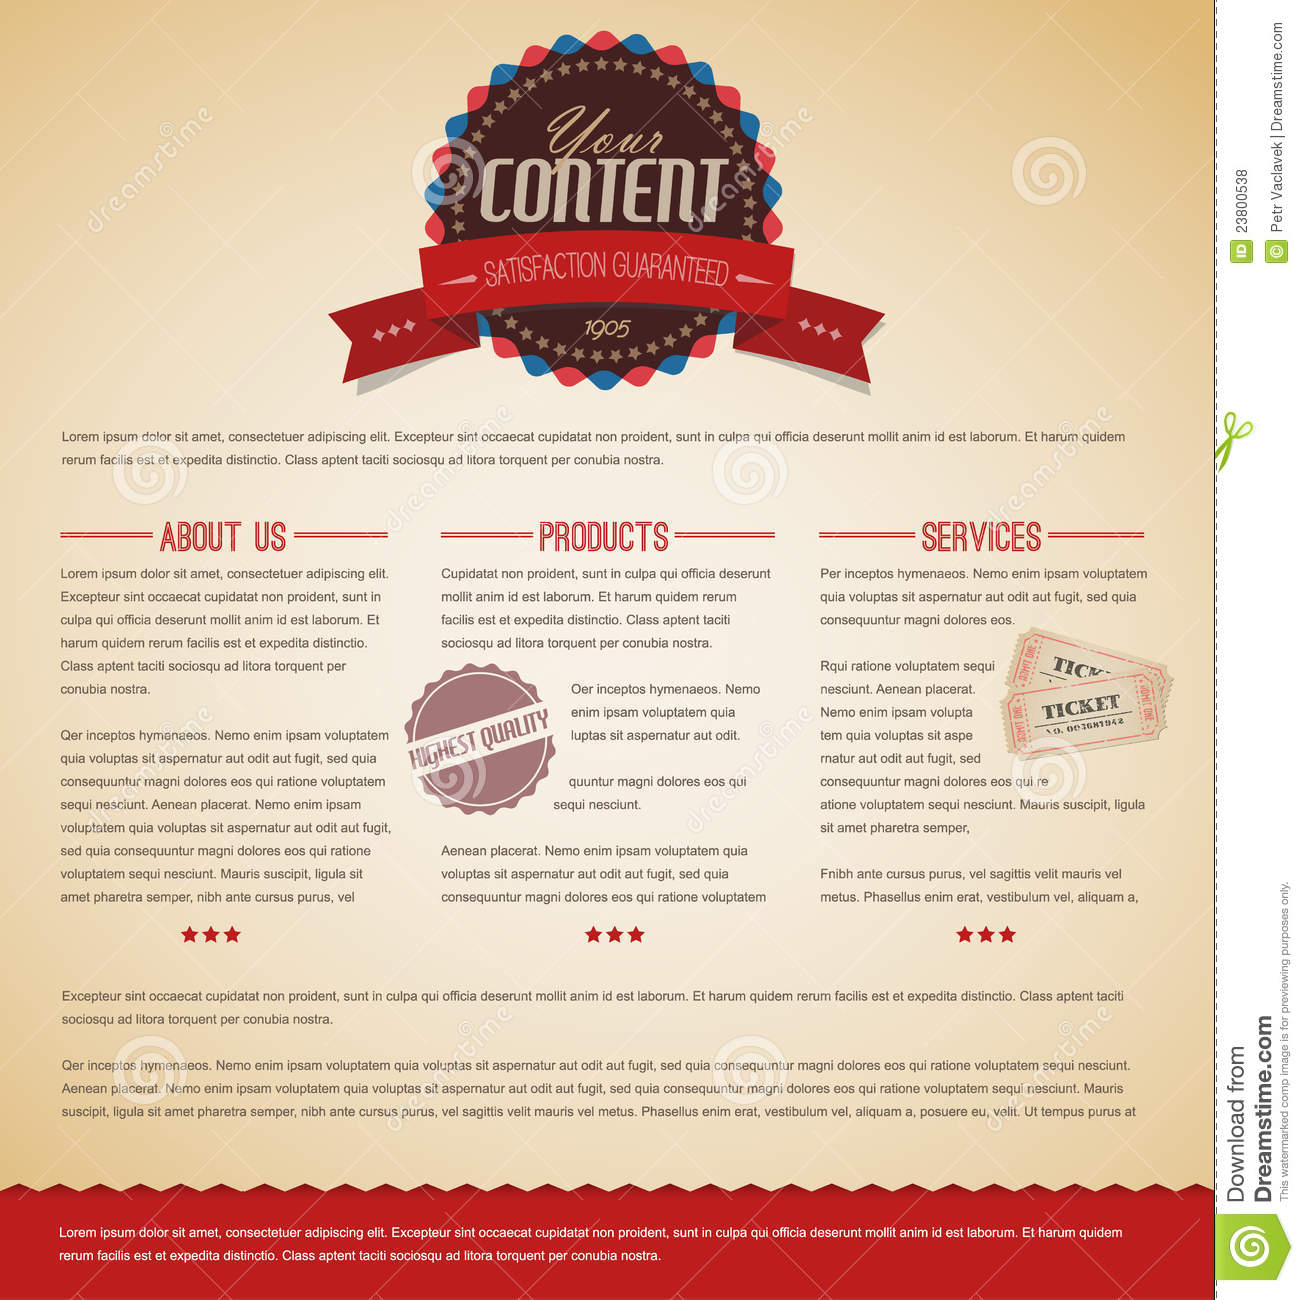 Retro Vintage Web Page Template Royalty Free Stock Photos - Image ...